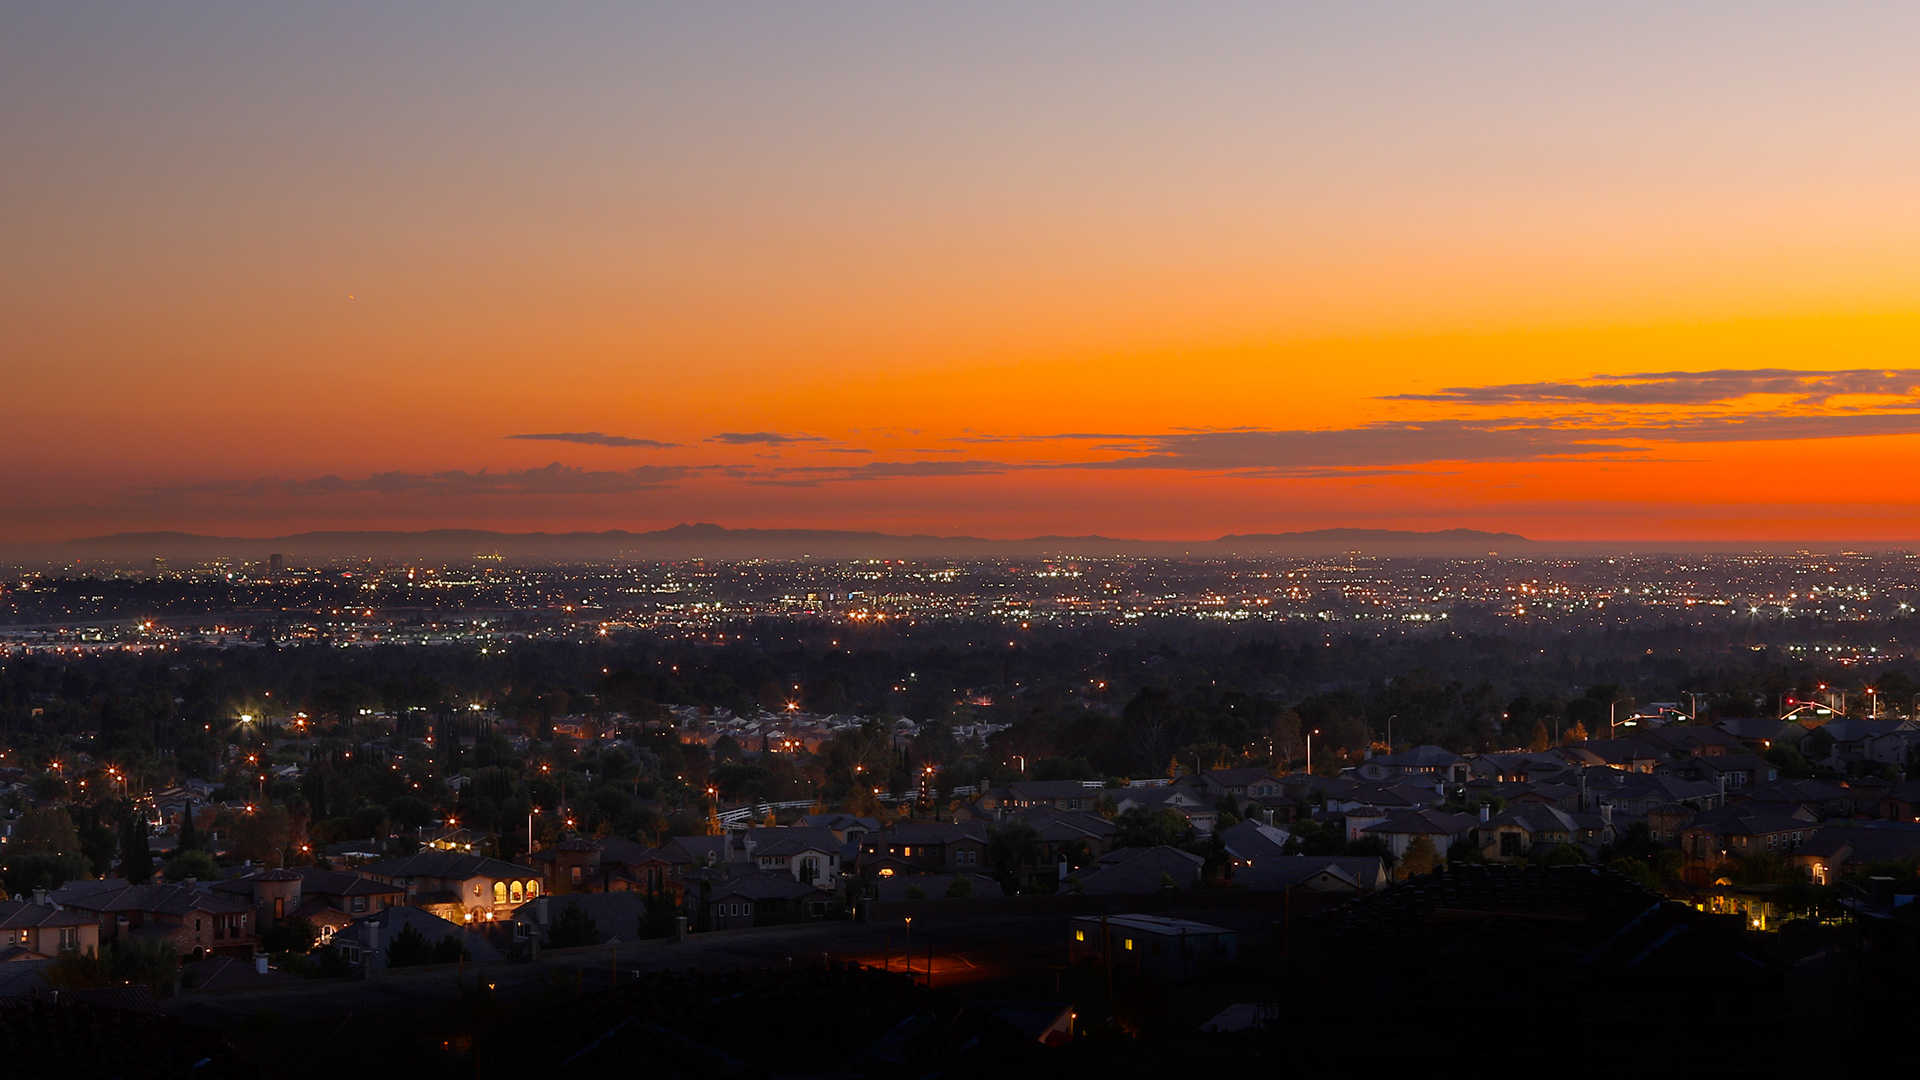 city of yorba linda california case There are over 10246 part time careers in yorba linda, ca waiting for you   the city of anaheim planning department is seeking a dynamic part time permit.